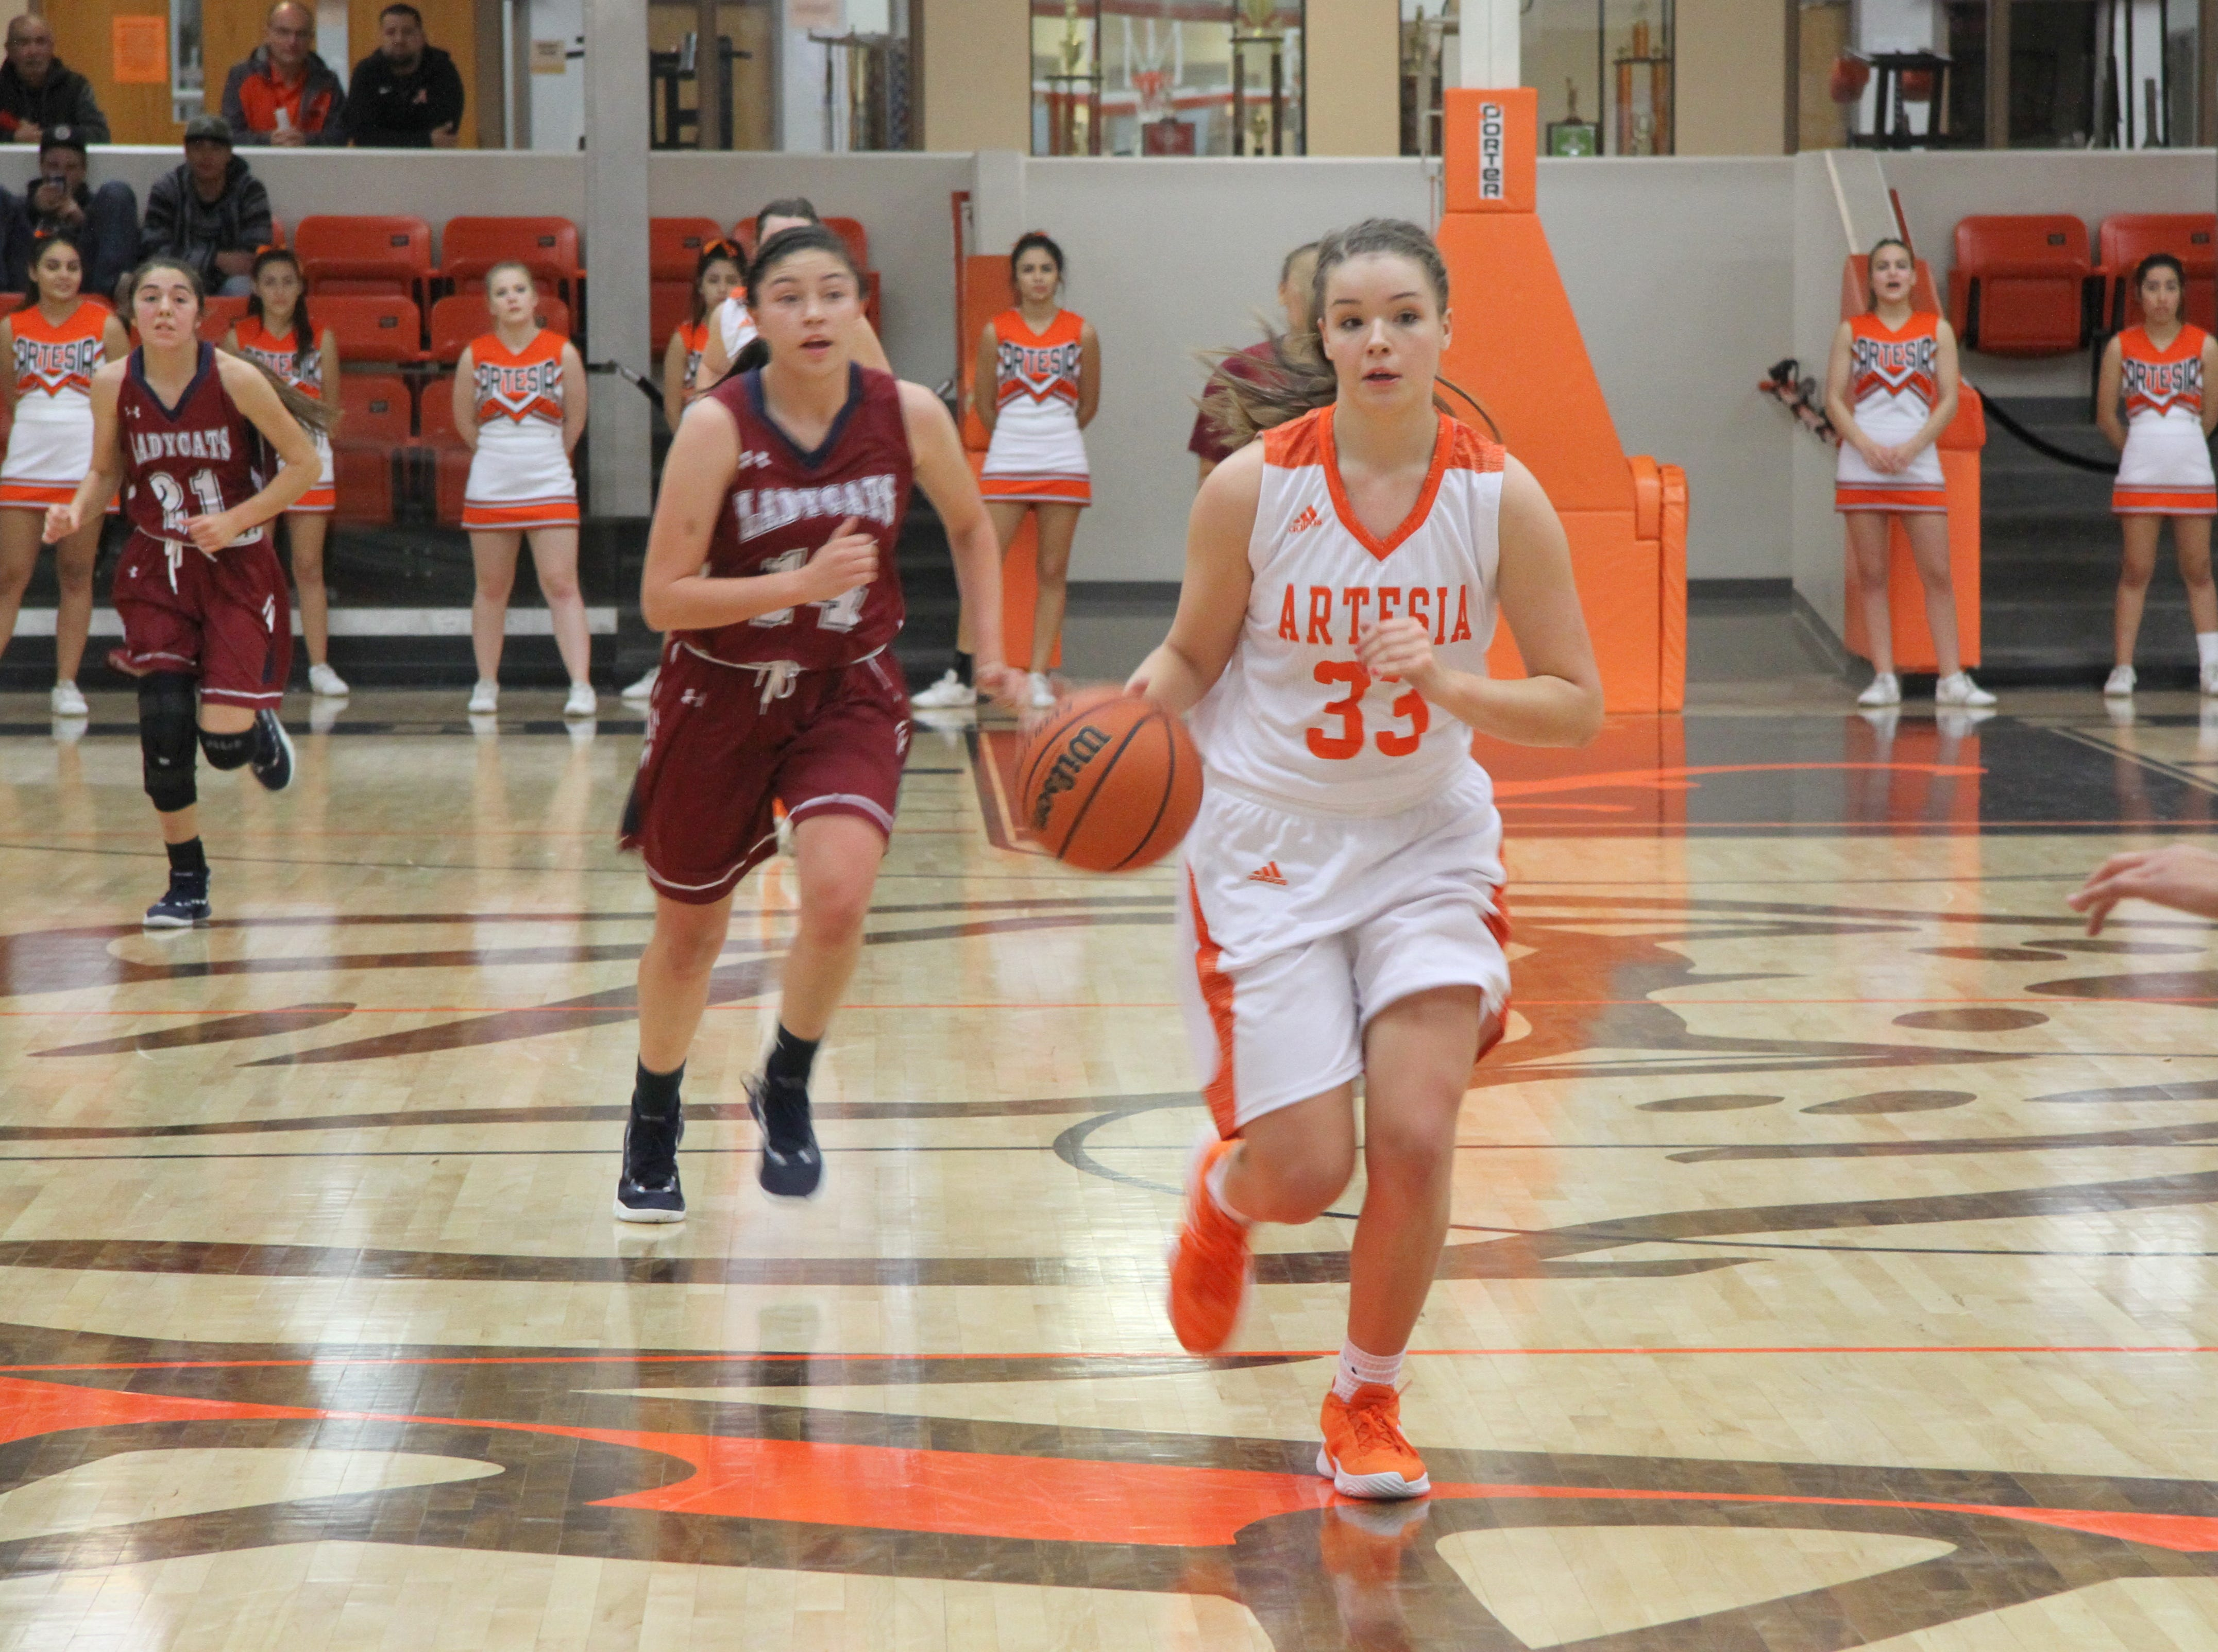 Kaylee Wagner leads a fastbreak against Deming during Friday's second round of the Artesia Tournament of Champions.